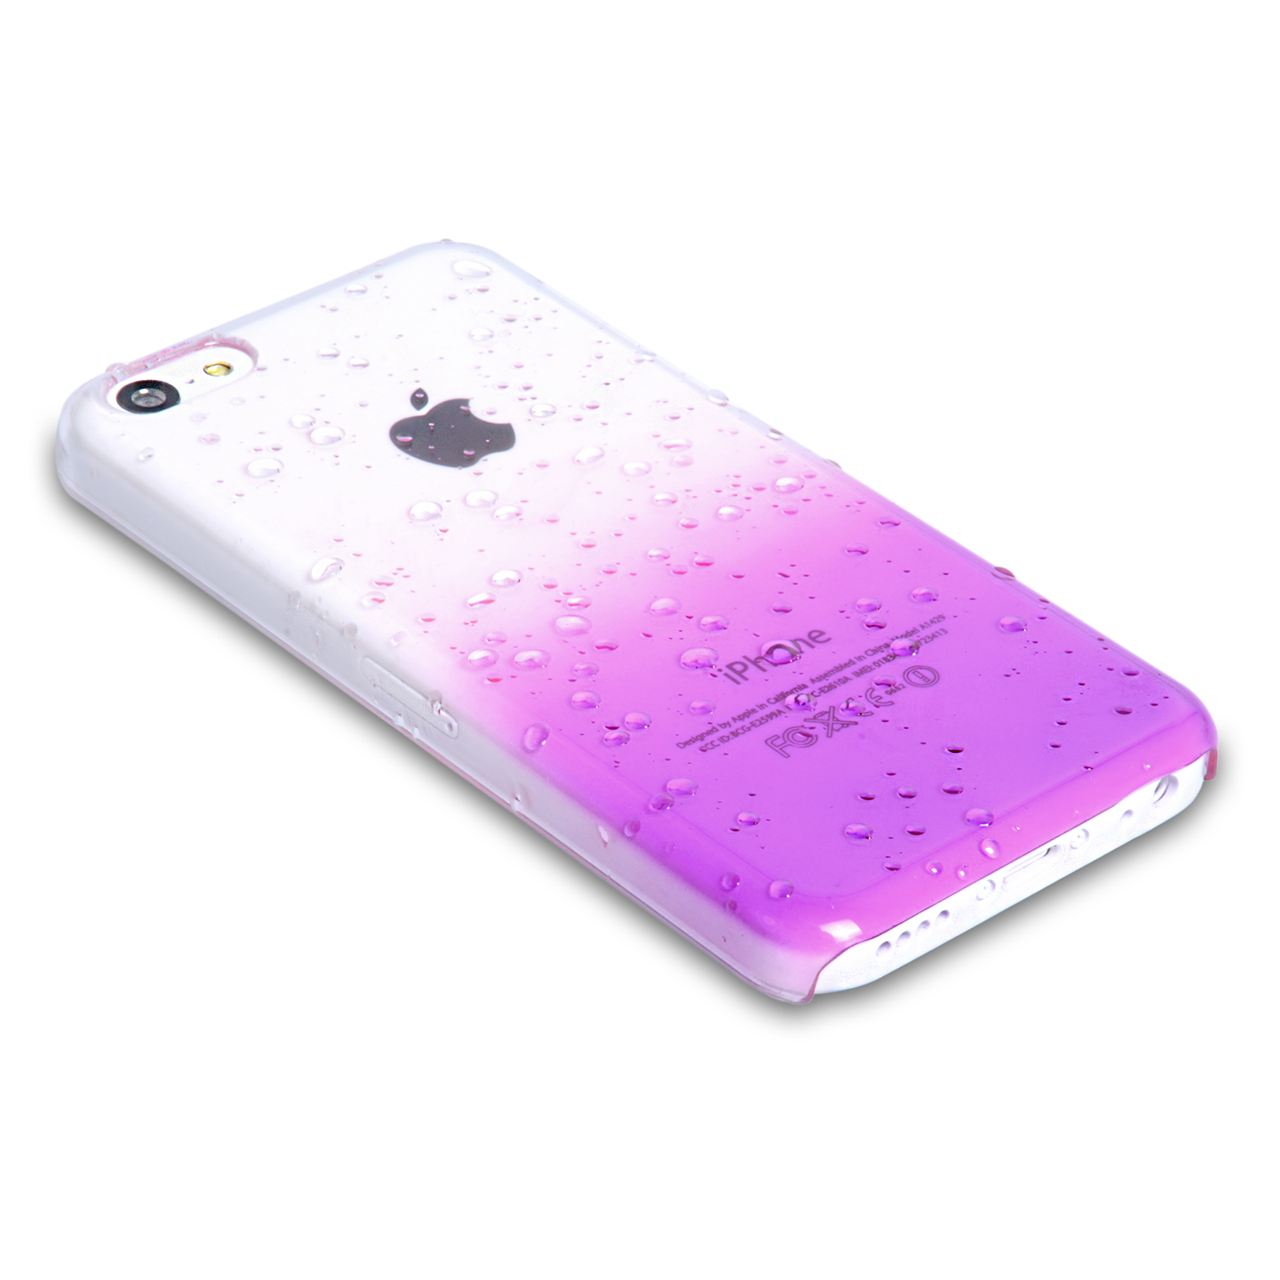 YouSave Accessories iPhone 5C Raindrop Hard Case - Purple